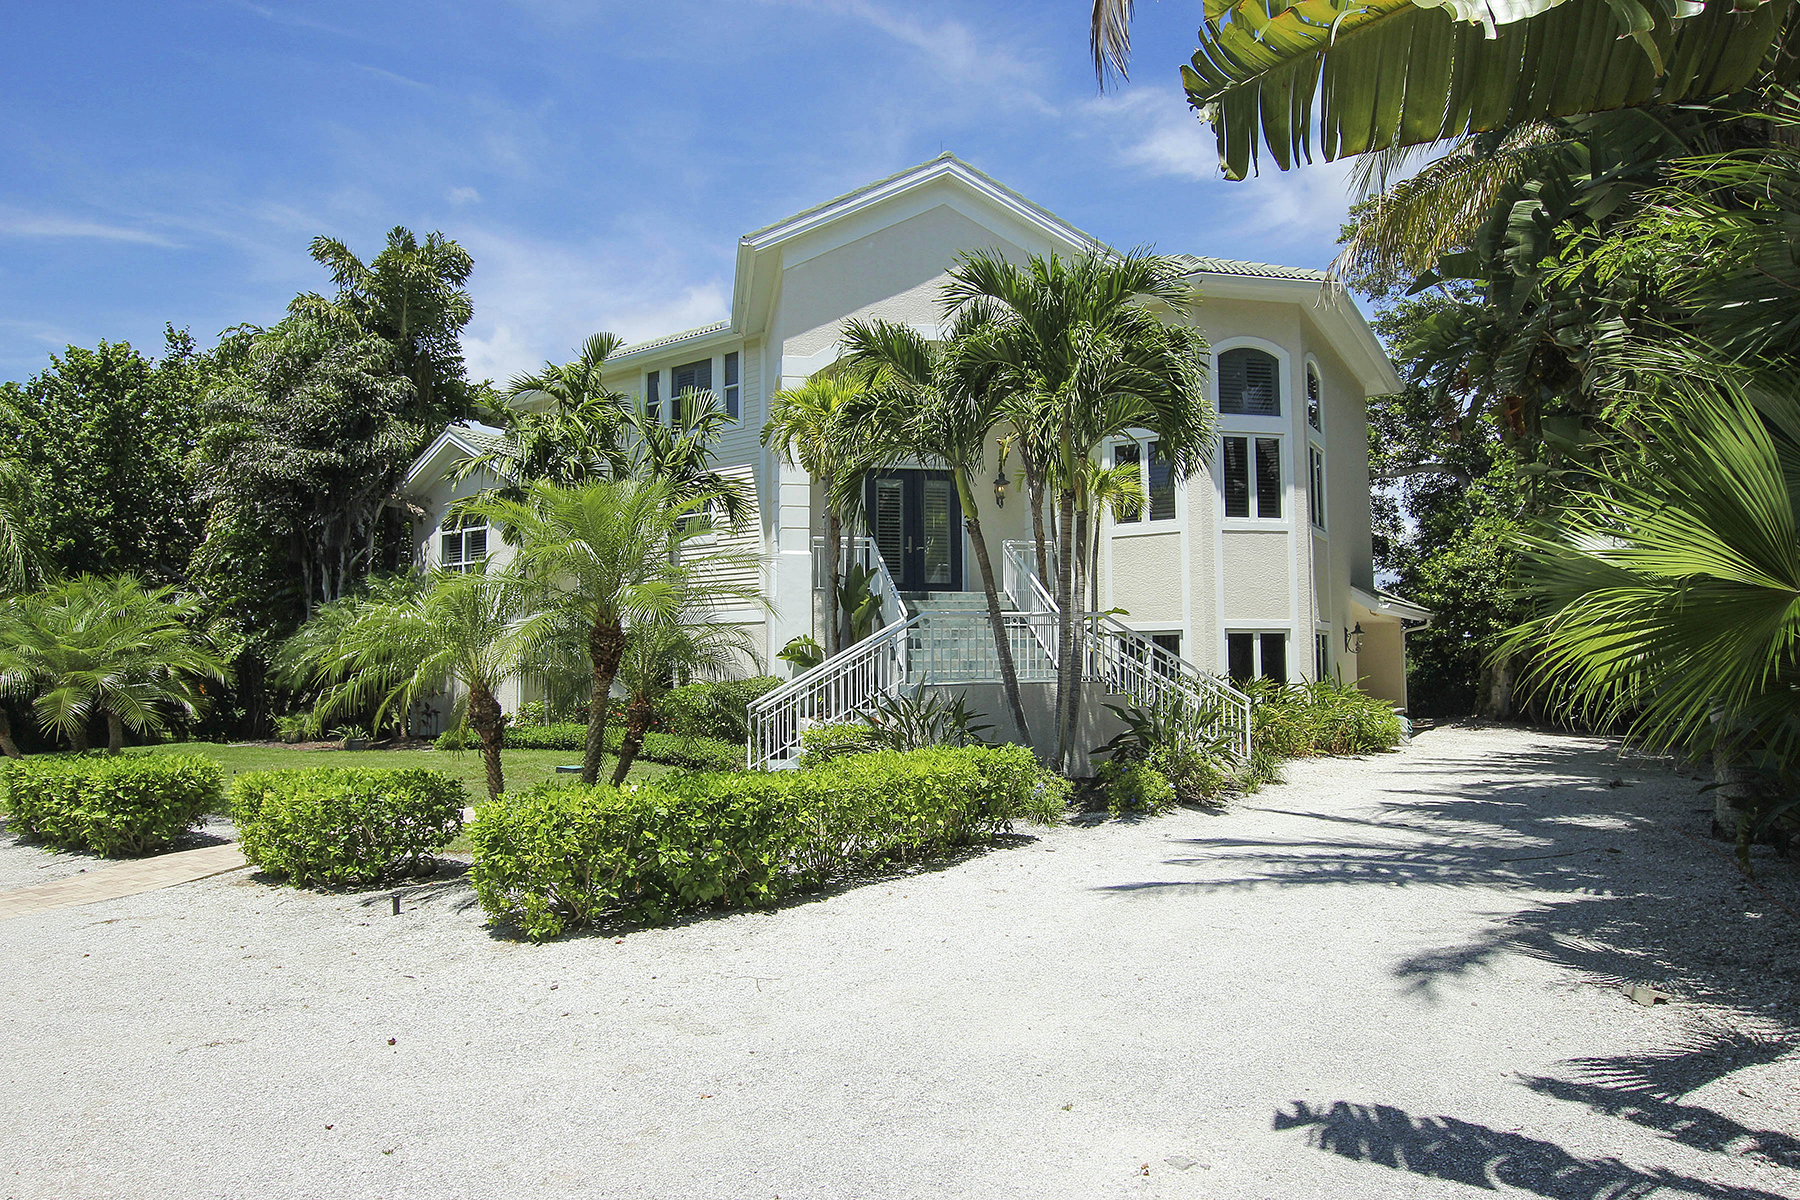 Single Family Home for Sale at 16447 Captiva Dr , Captiva, FL 33924 16447 Captiva Dr, Captiva, Florida 33924 United States